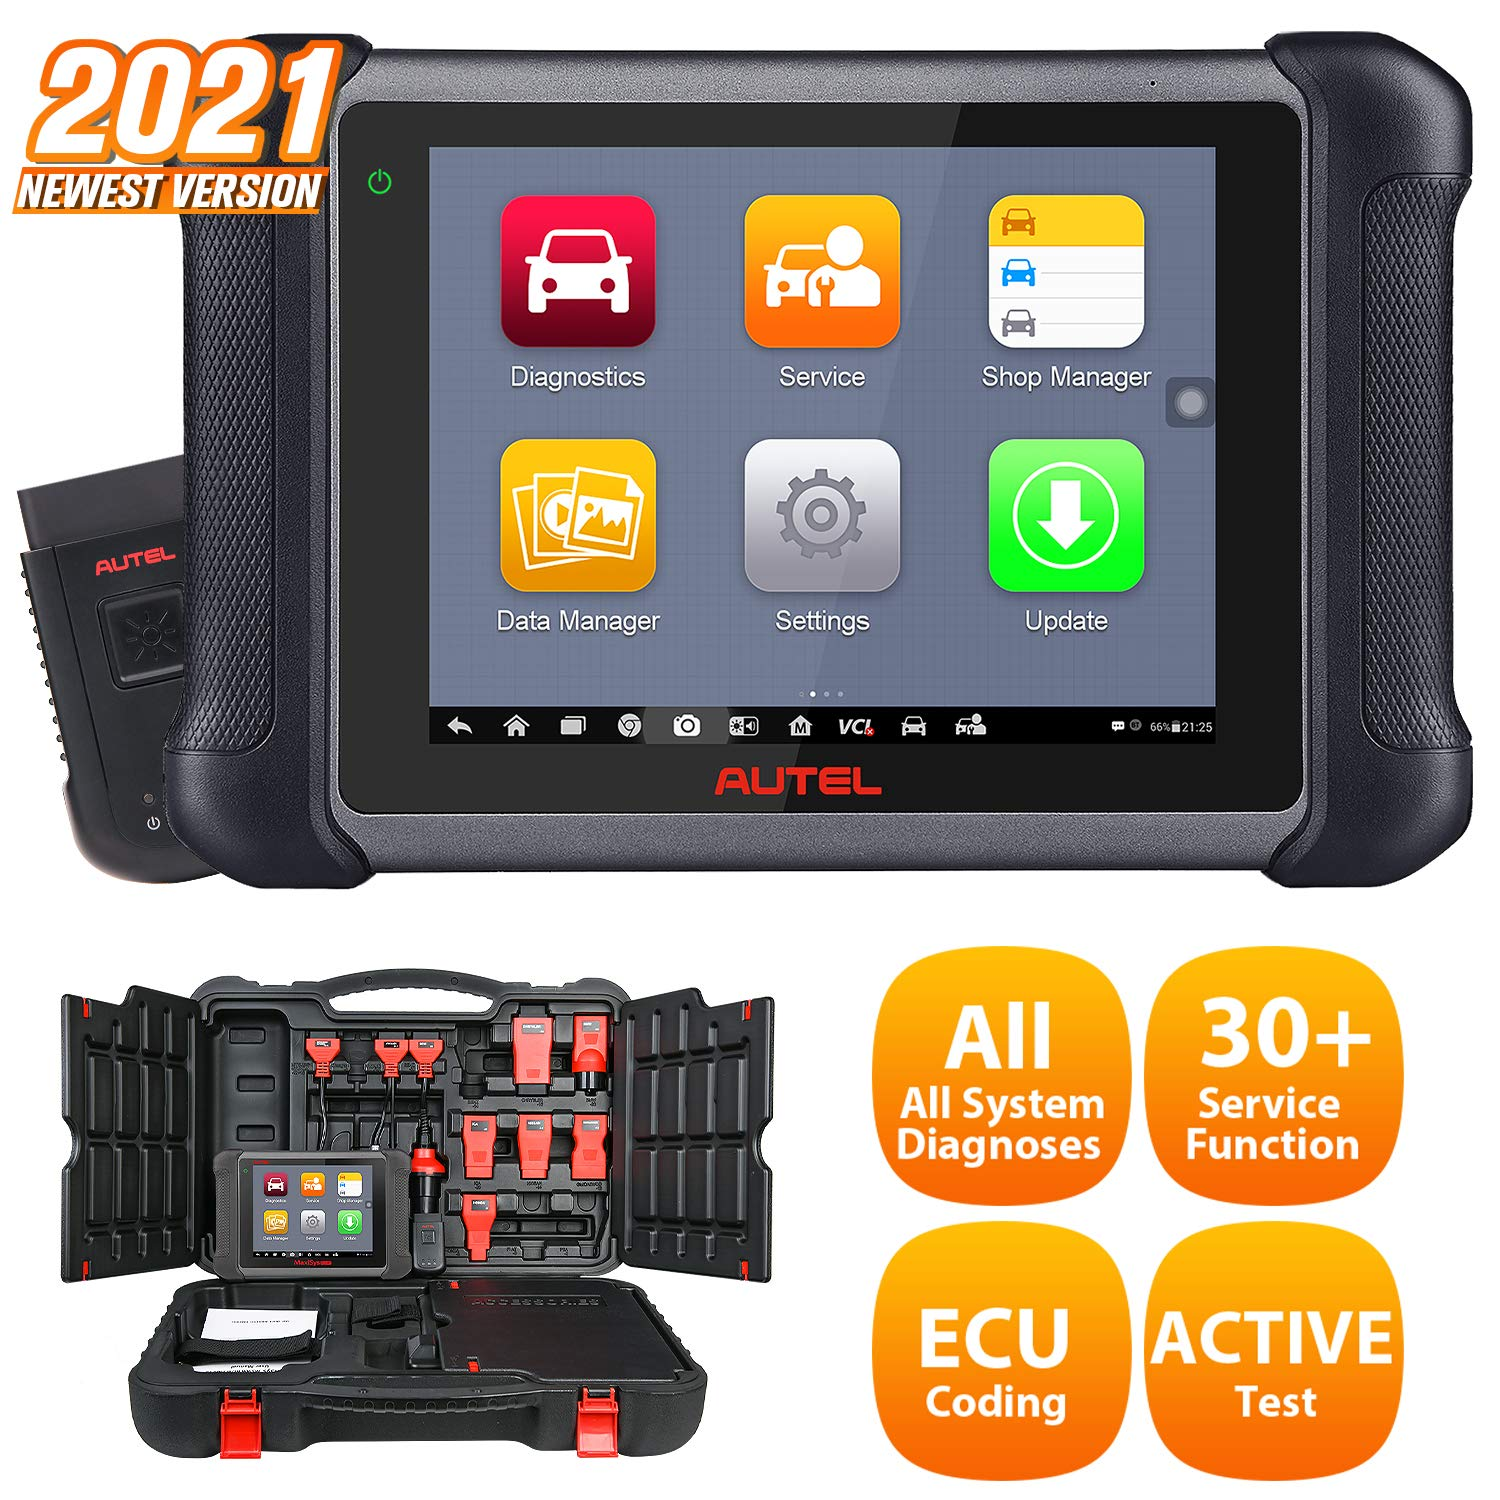 Autel MaxiSys MS906BT Automotive Diagnostic Scan Tool, 2021 Newest Scanner with ECU Coding, Bi-Directional Control, ABS Bleed, Oil Reset, ABS, SRS, DPF, EPB, Advanced Ver. of MS906 DS808 MK808